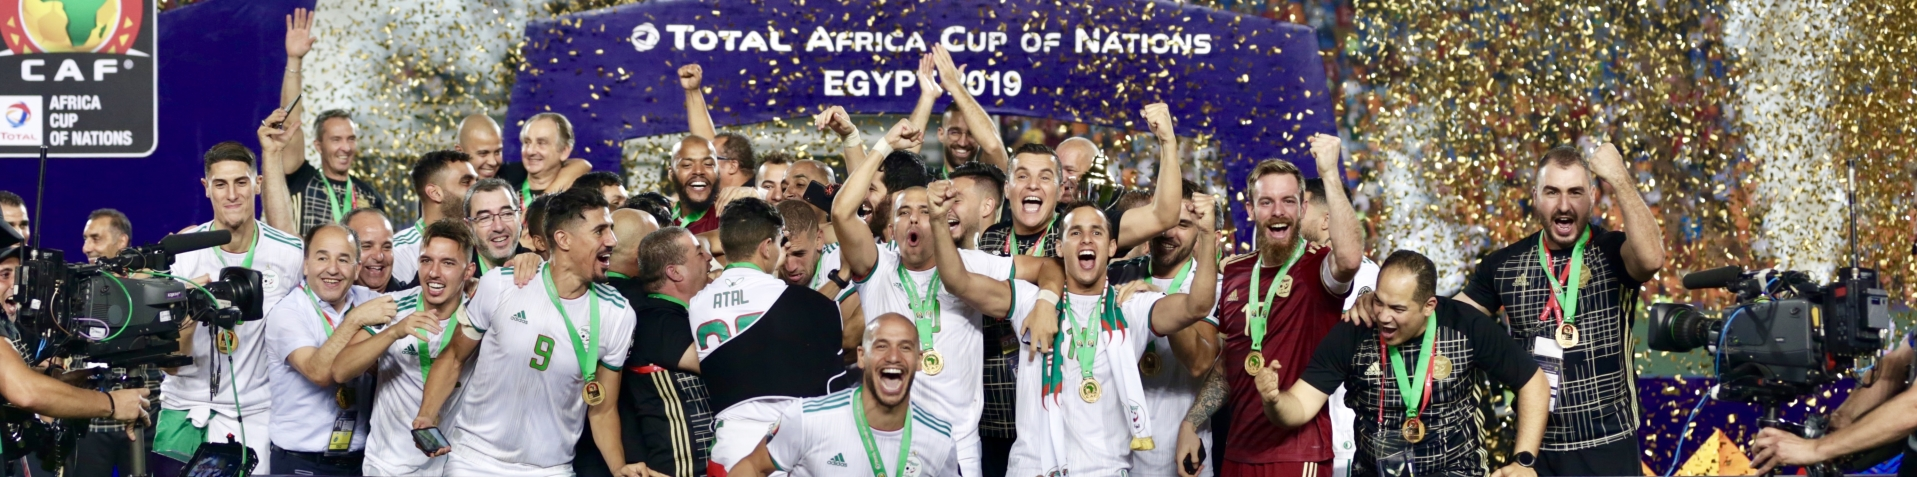 Algeria wins 2019 Africa Cup of Nations